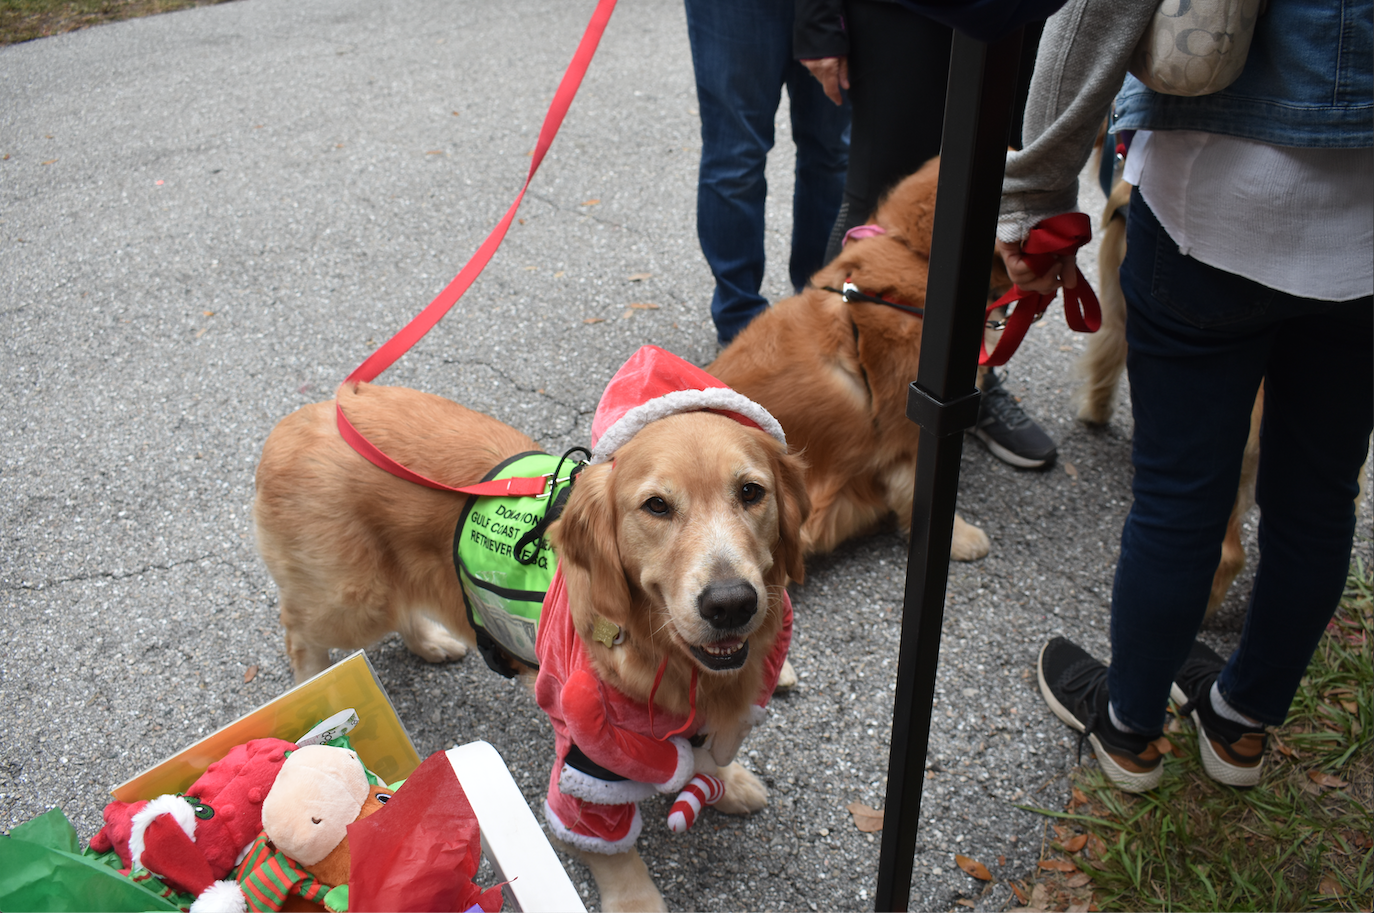 Canine Christmas aims to find homes for shelter dogs